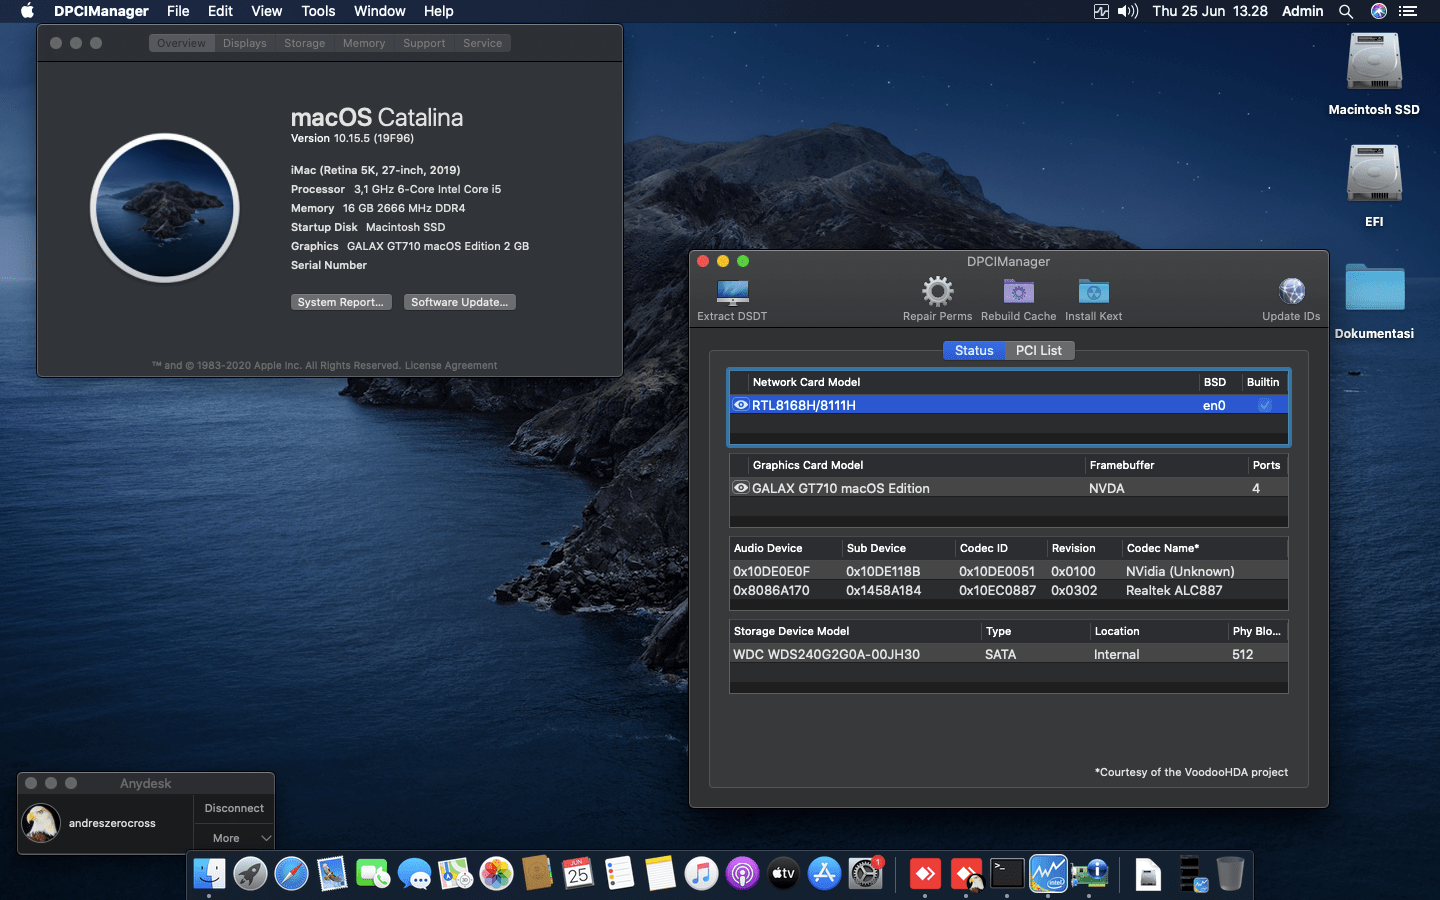 Success Hackintosh macOS Catalina 10.15.5 Build 19F96 in Gigabyte H410M S2 + Intel Core i5 10500 + Galax GT710